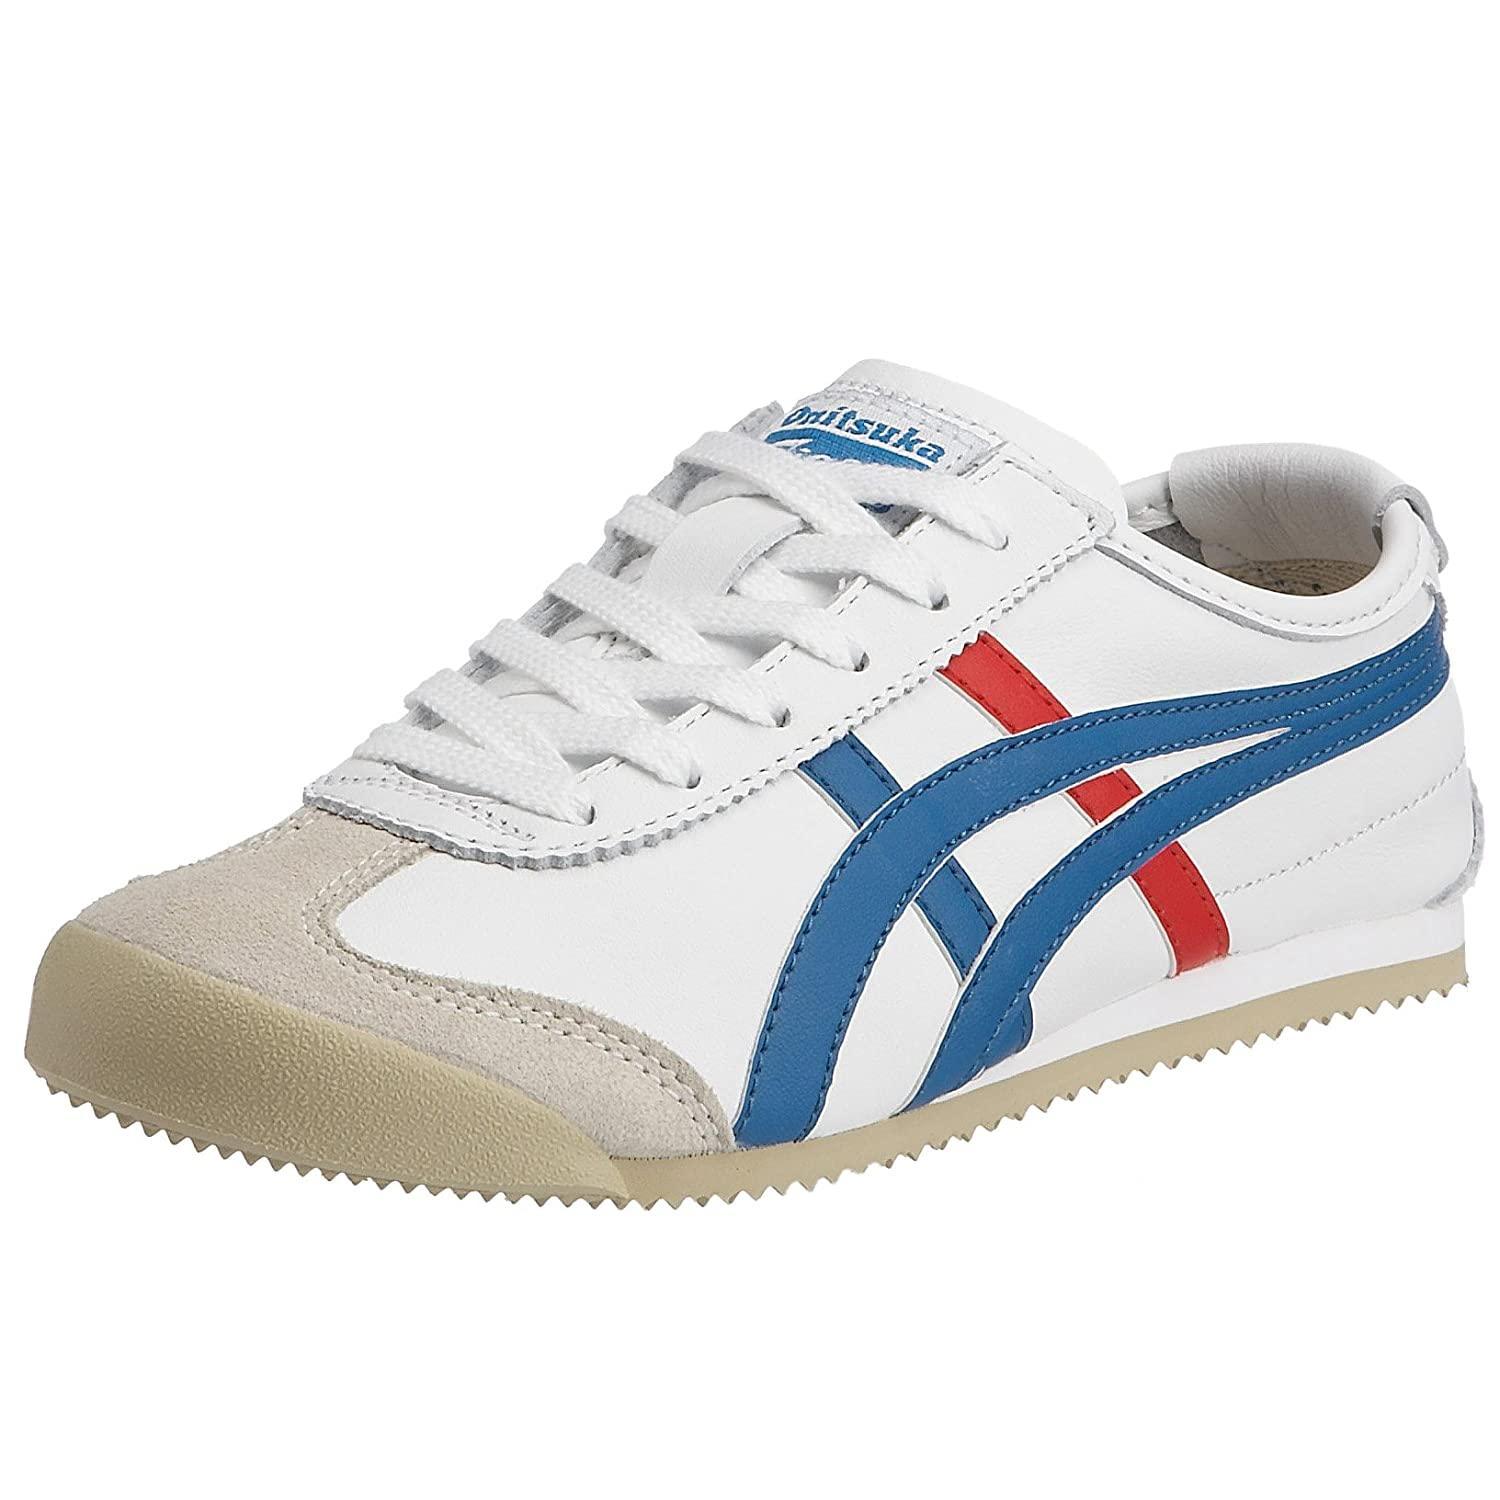 Onitsuka Tiger Tiger Mexico 66 – -Chaussures mixtes Adulte HL202 0146